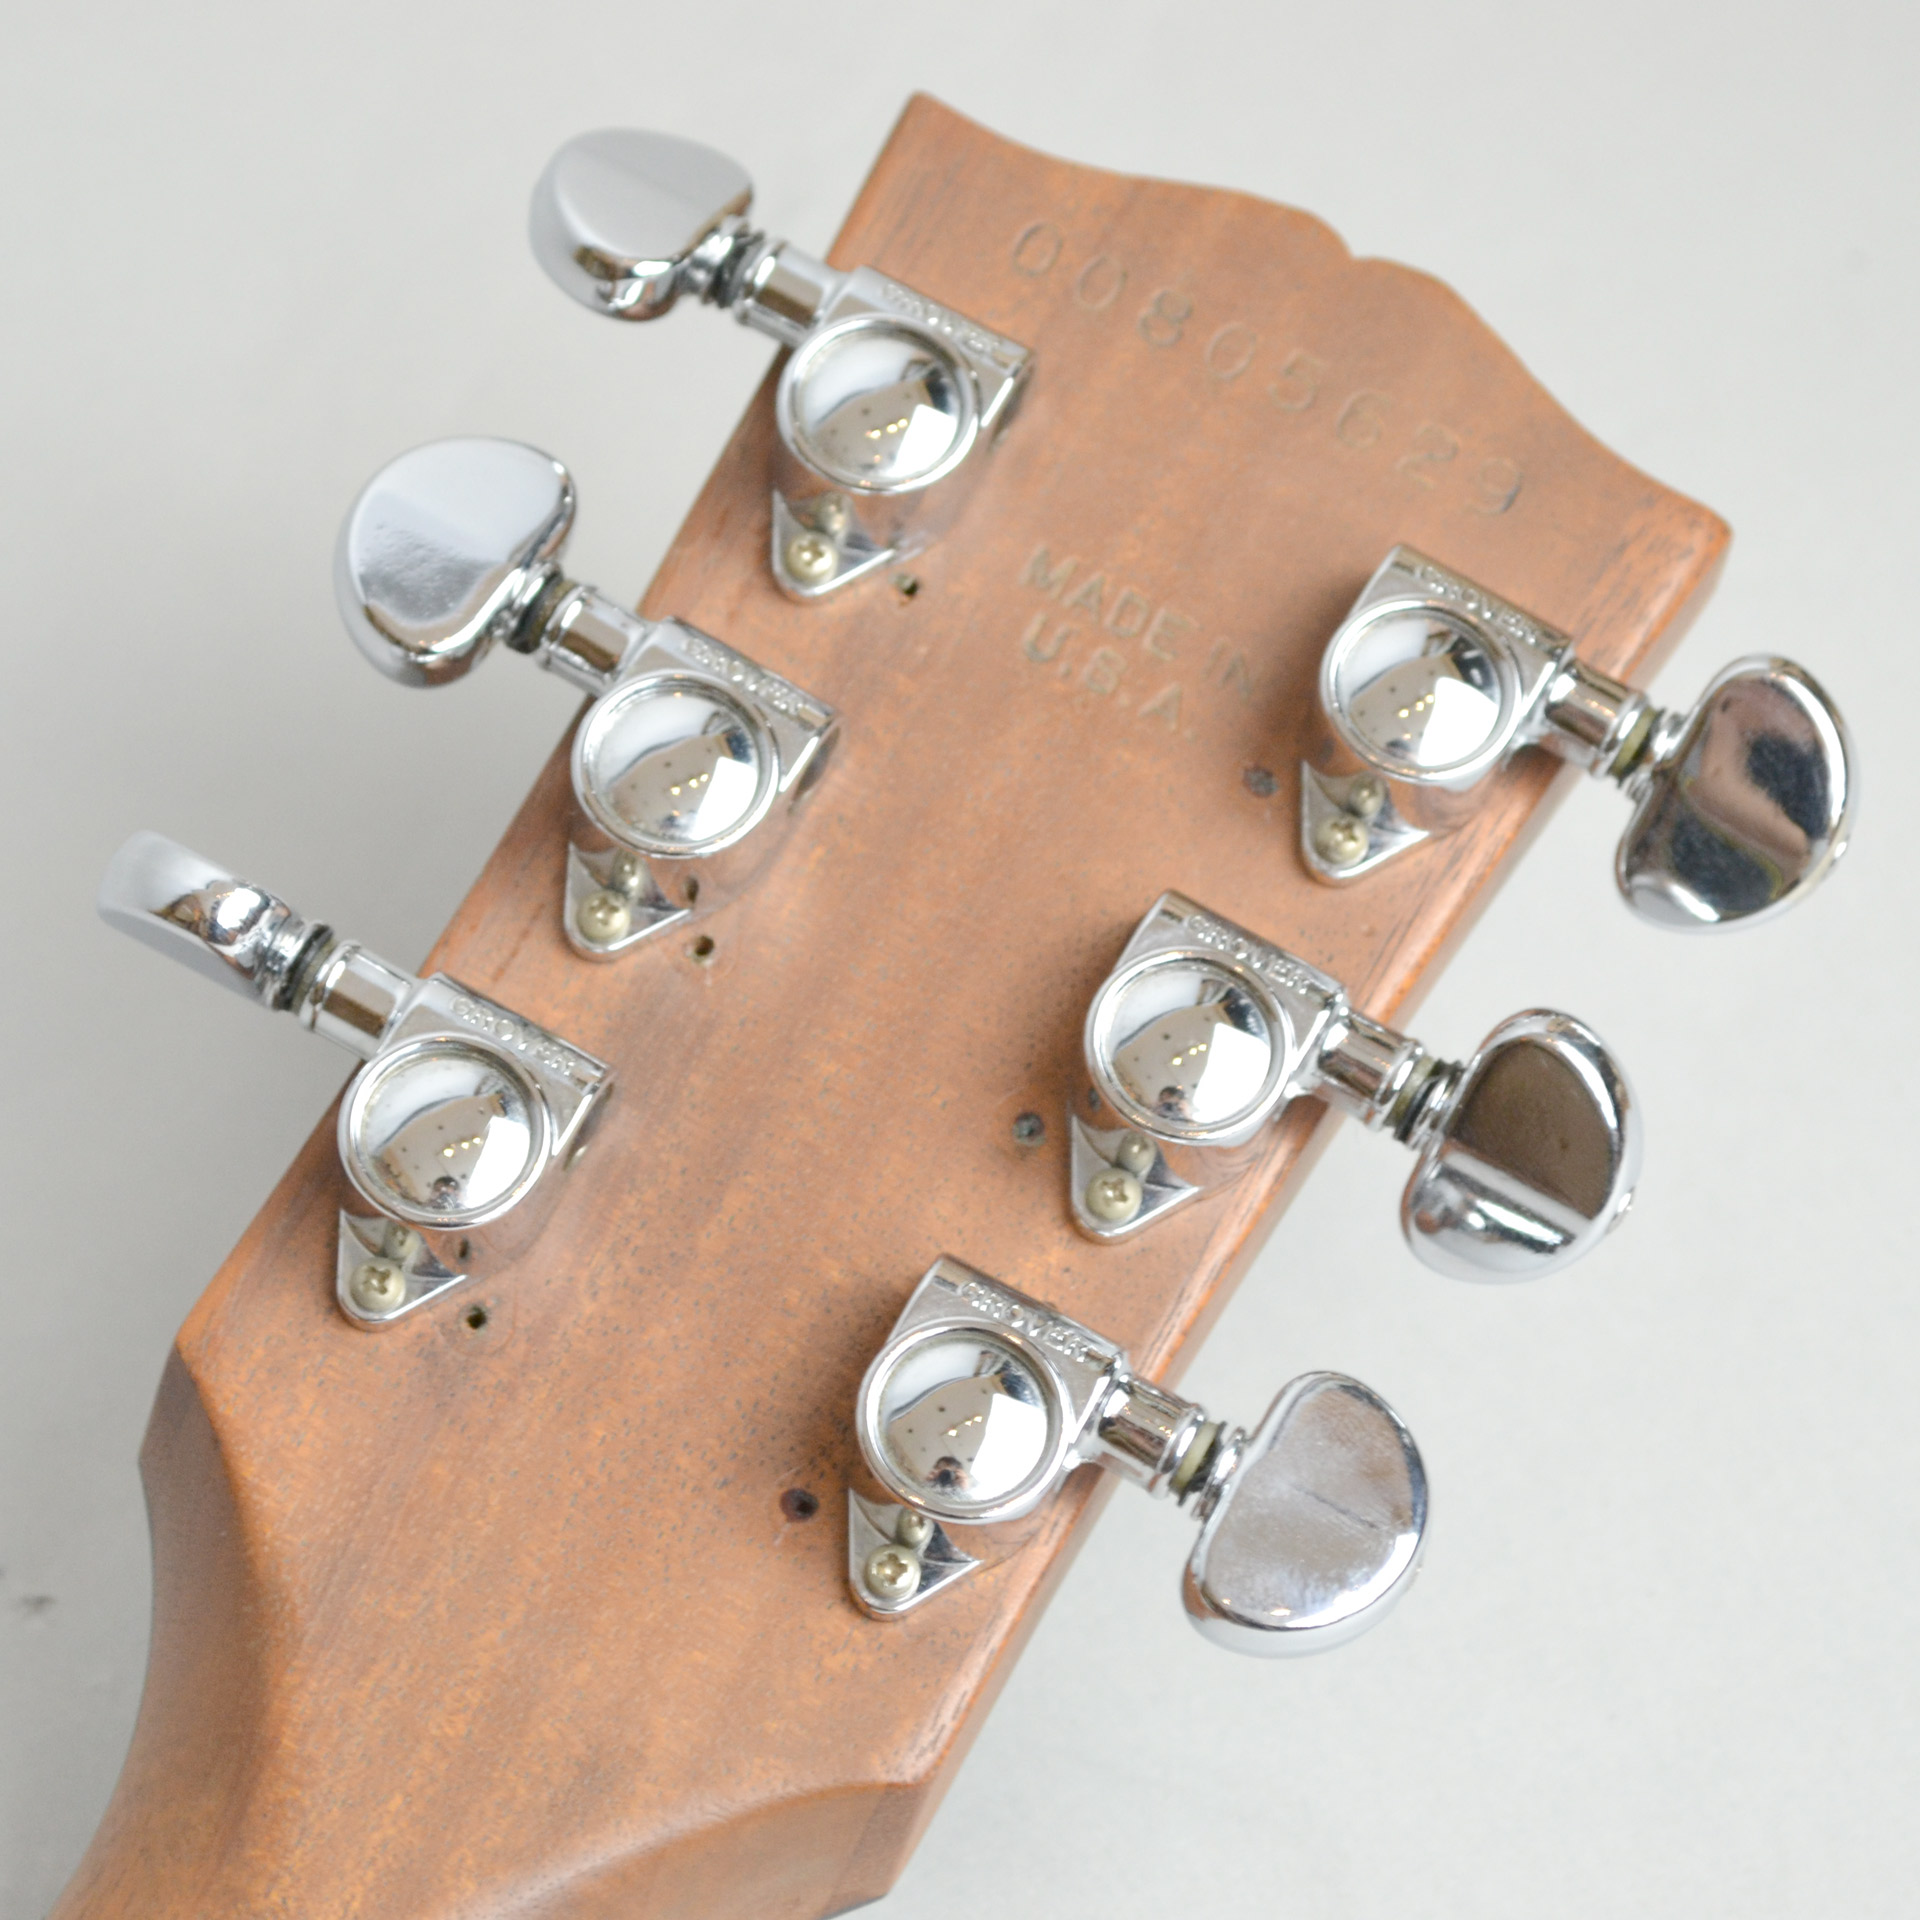 SG SPECIALのケース・その他画像